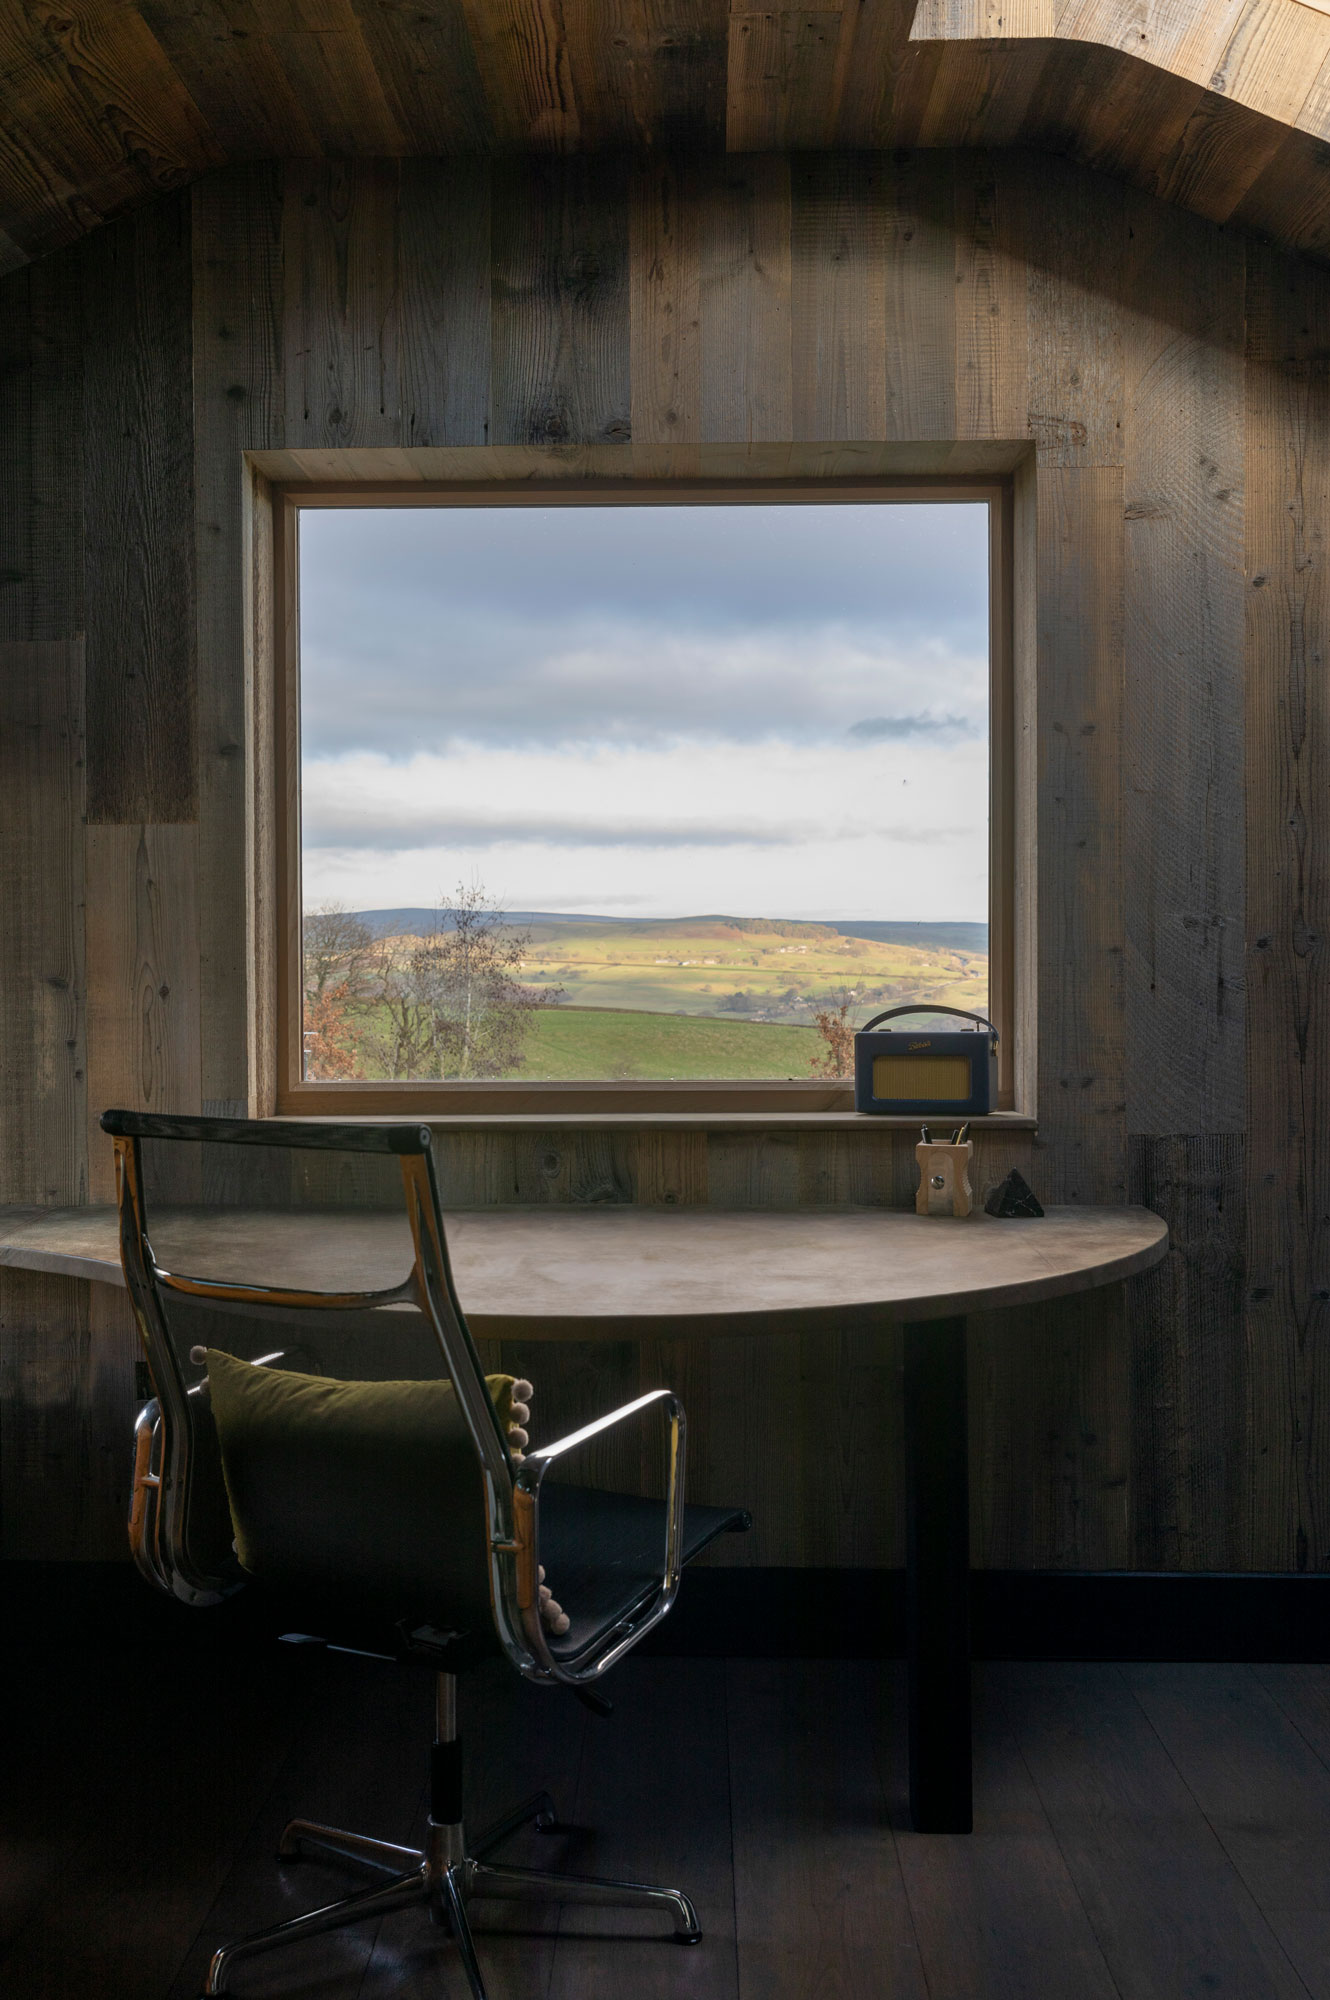 Office desk and chair in front of window in a fully cladded wood room